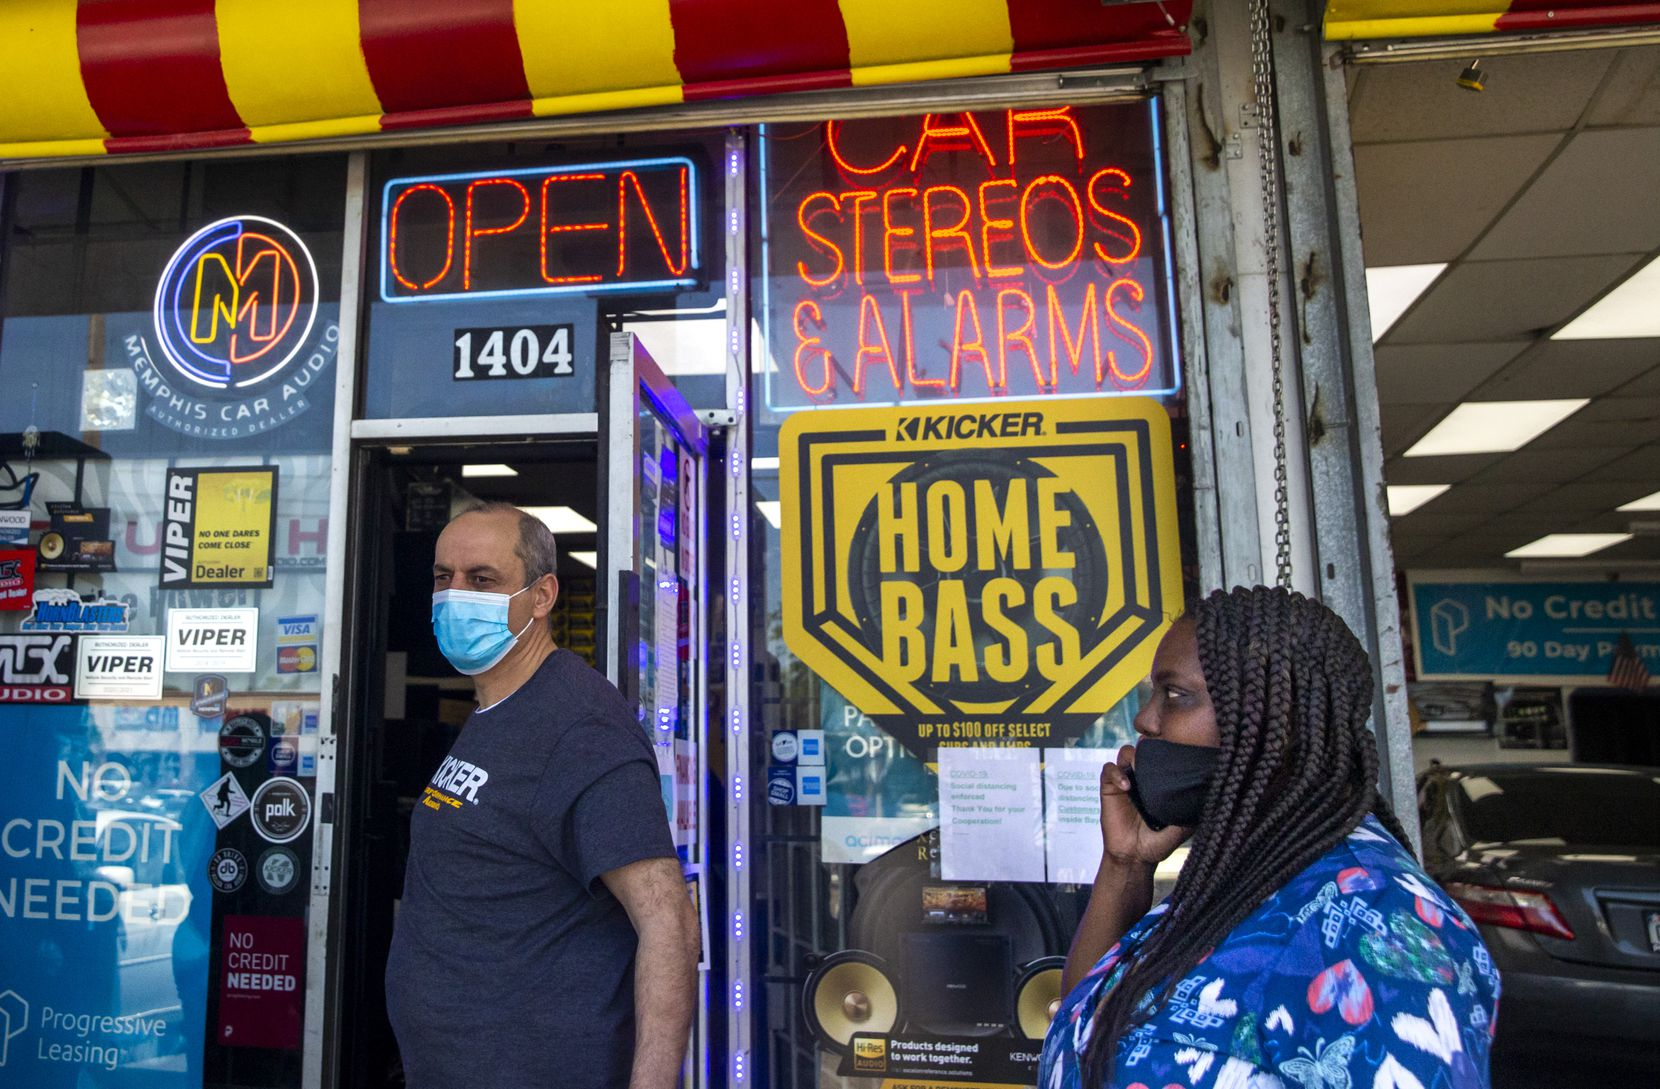 Owner Mike Shawar walks out of his business to tend to customers, including Tiffany Reed (right), at the Stereo Express on South Buckner Boulevard in South Dallas on Friday, May 1, 2020. The stereo store opened up again Friday morning after the state order against certain nonessential businesses operating during the COVID-19 pandemic was lifted.